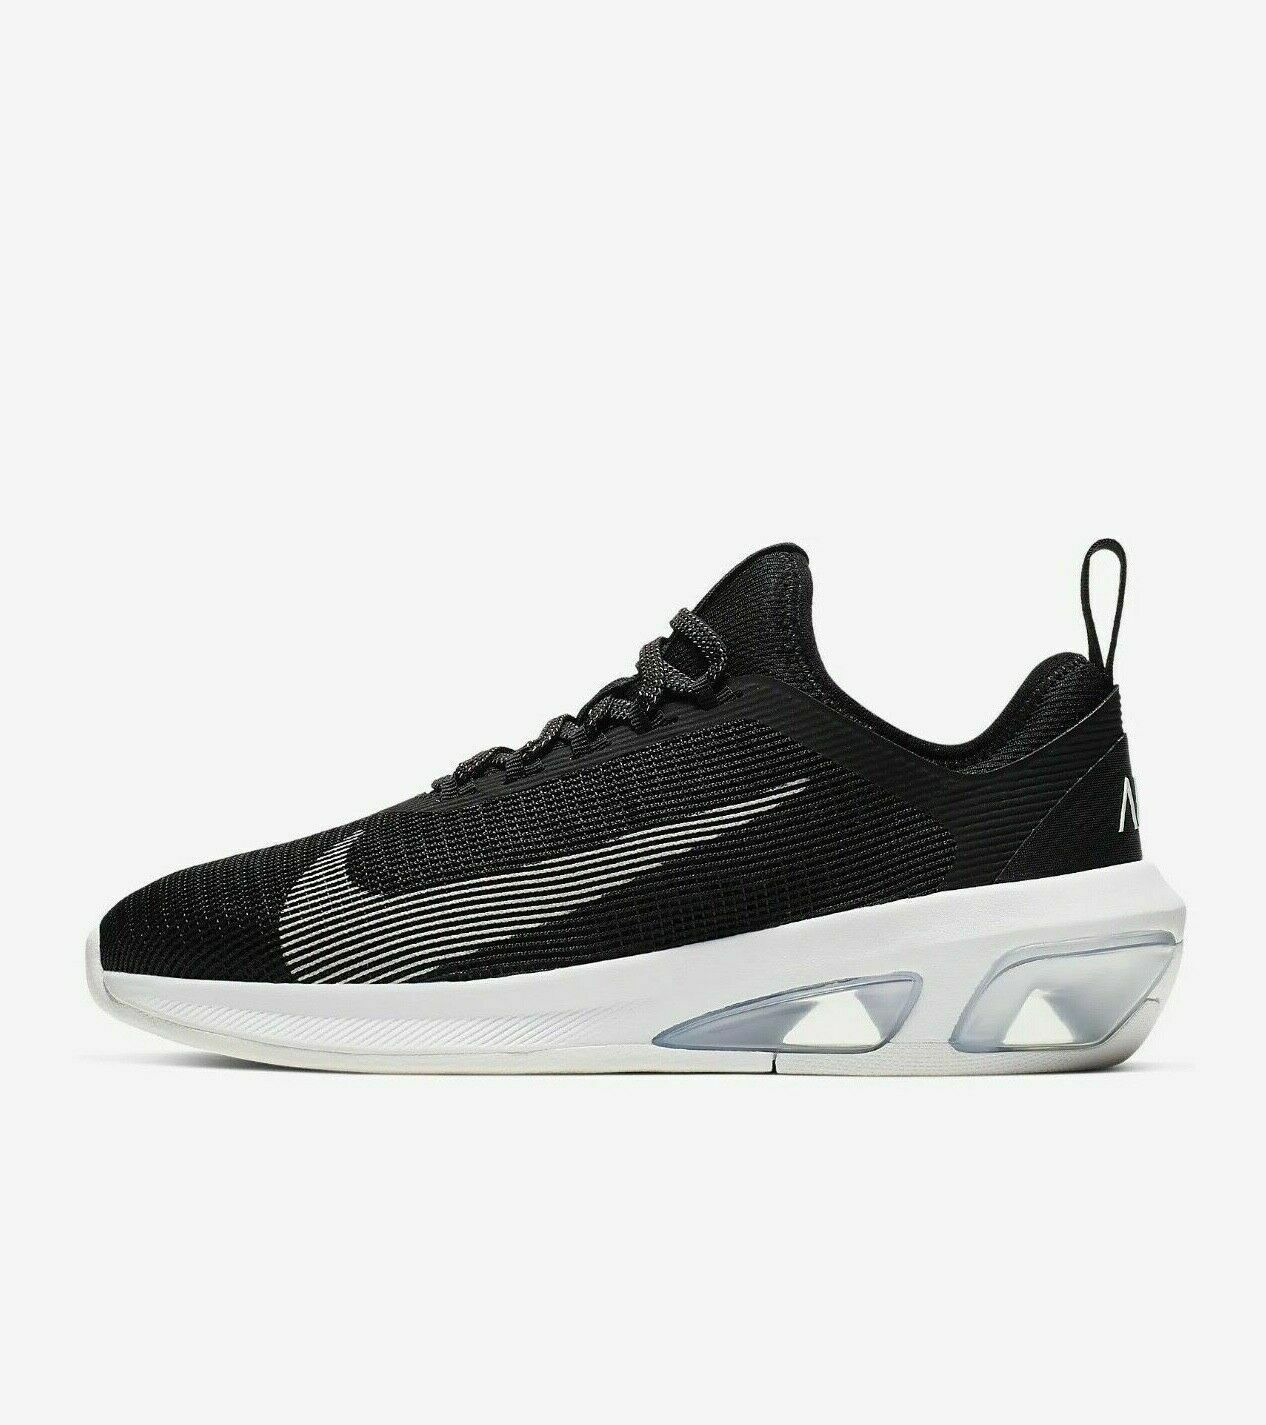 Nike Air Max Fly AT2506-002 Black White Wolf Grey Men's Running Lifestyle Shoes image 2